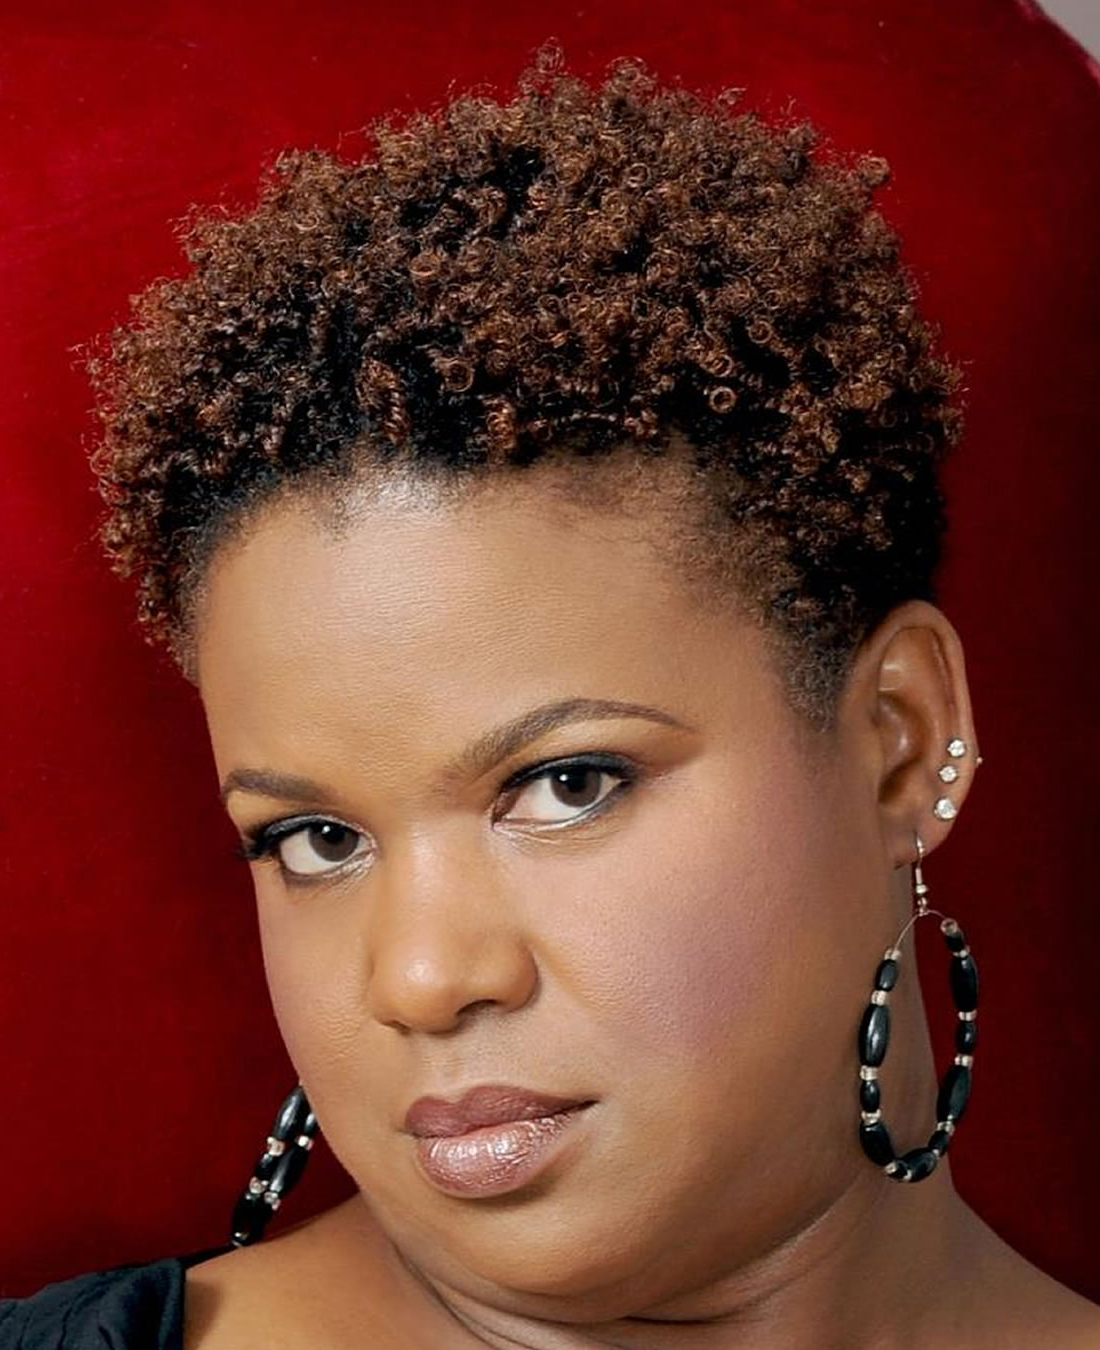 46 Modern Short Haircuts For Office Women To Try In 2018 2019 Inside Short Haircuts For African American Women With Round Faces (View 2 of 25)